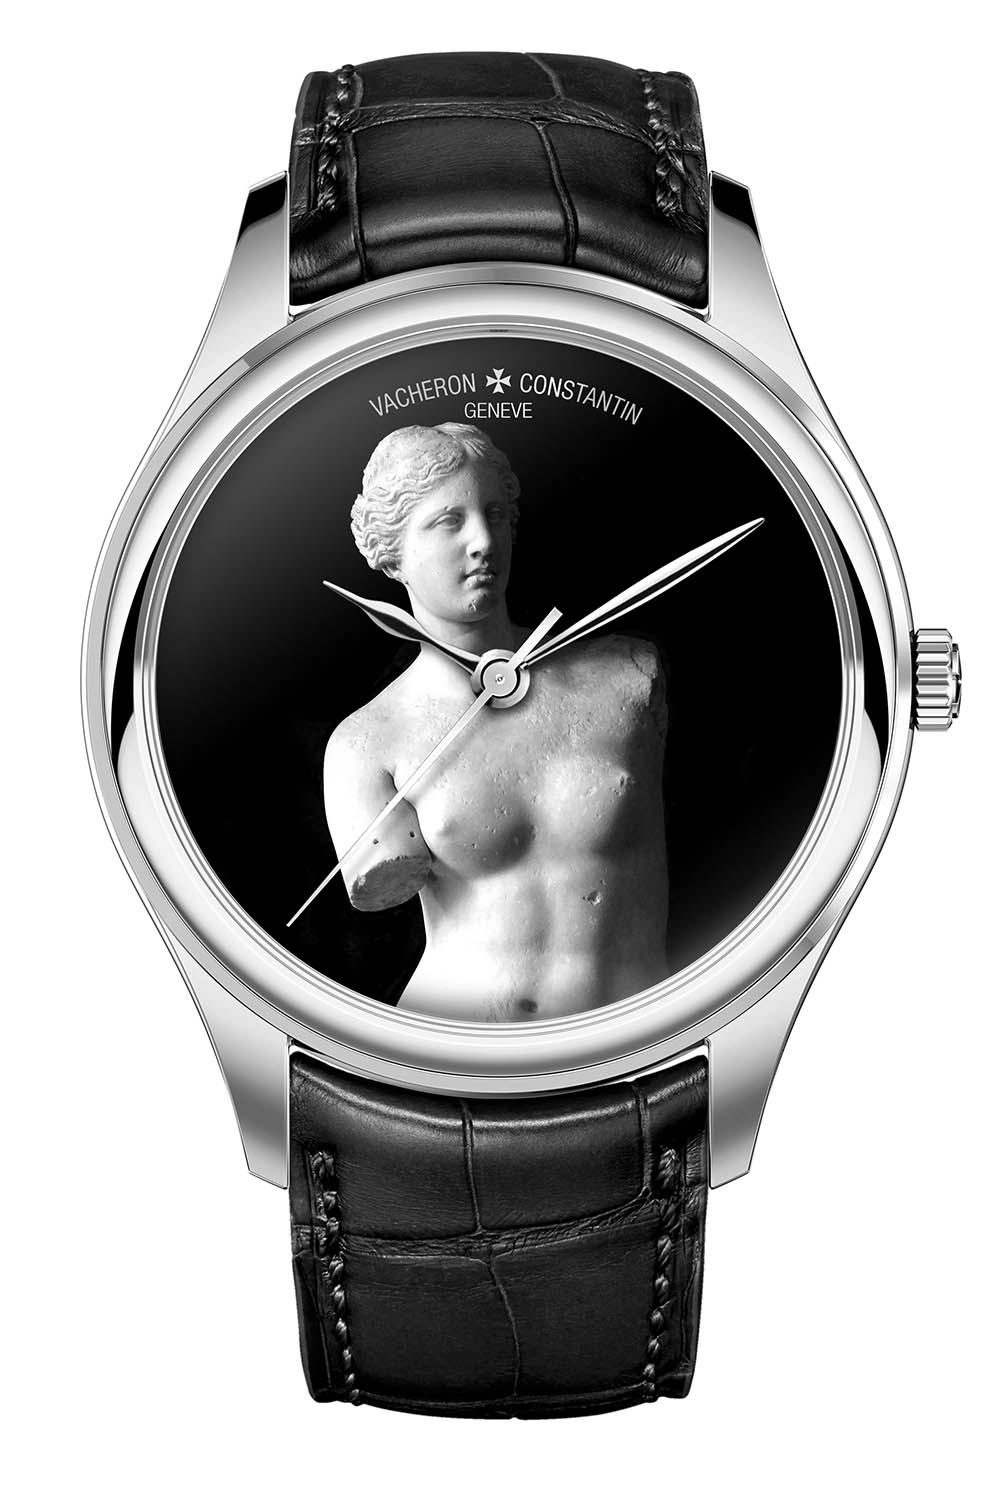 Bespoke Vacheron Constantin up for auction at the Louvre Museum - 2